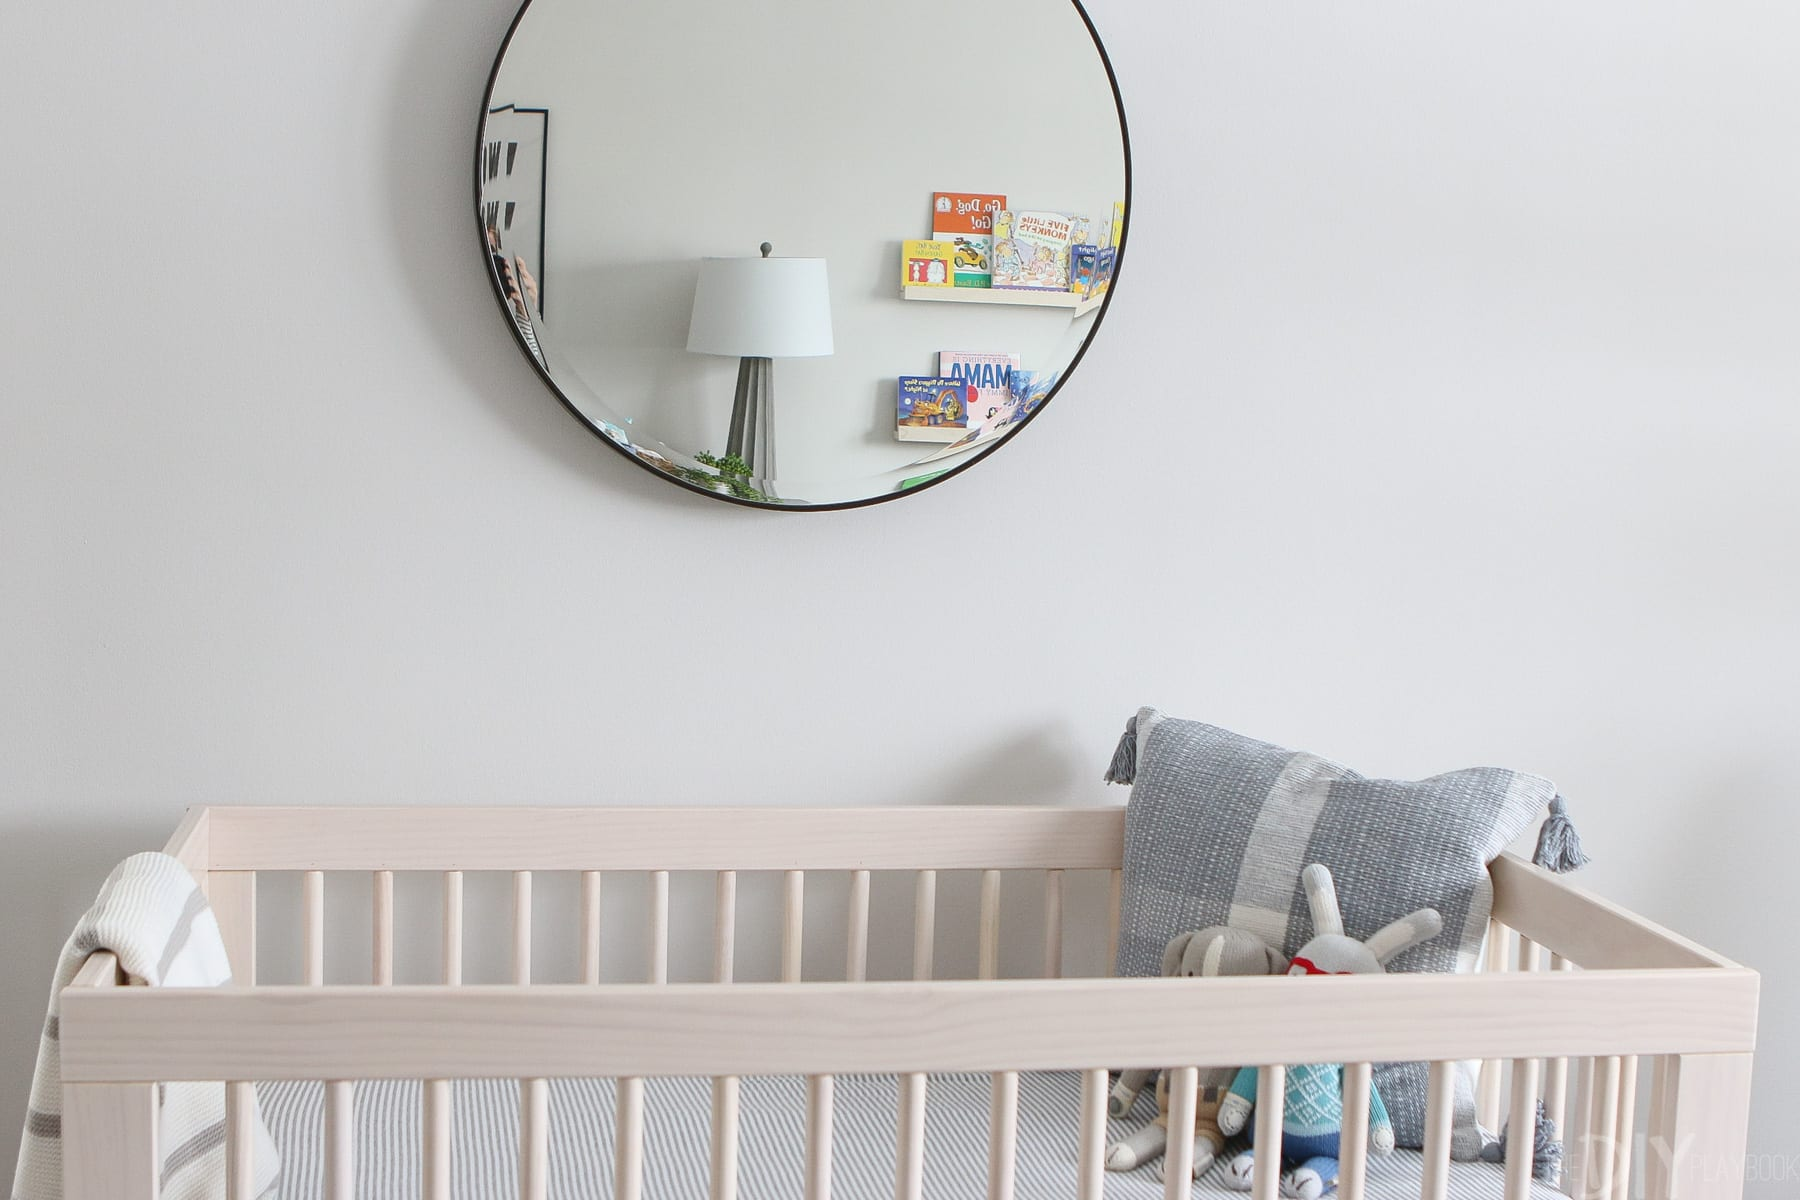 Round mirror over a natural wood crib